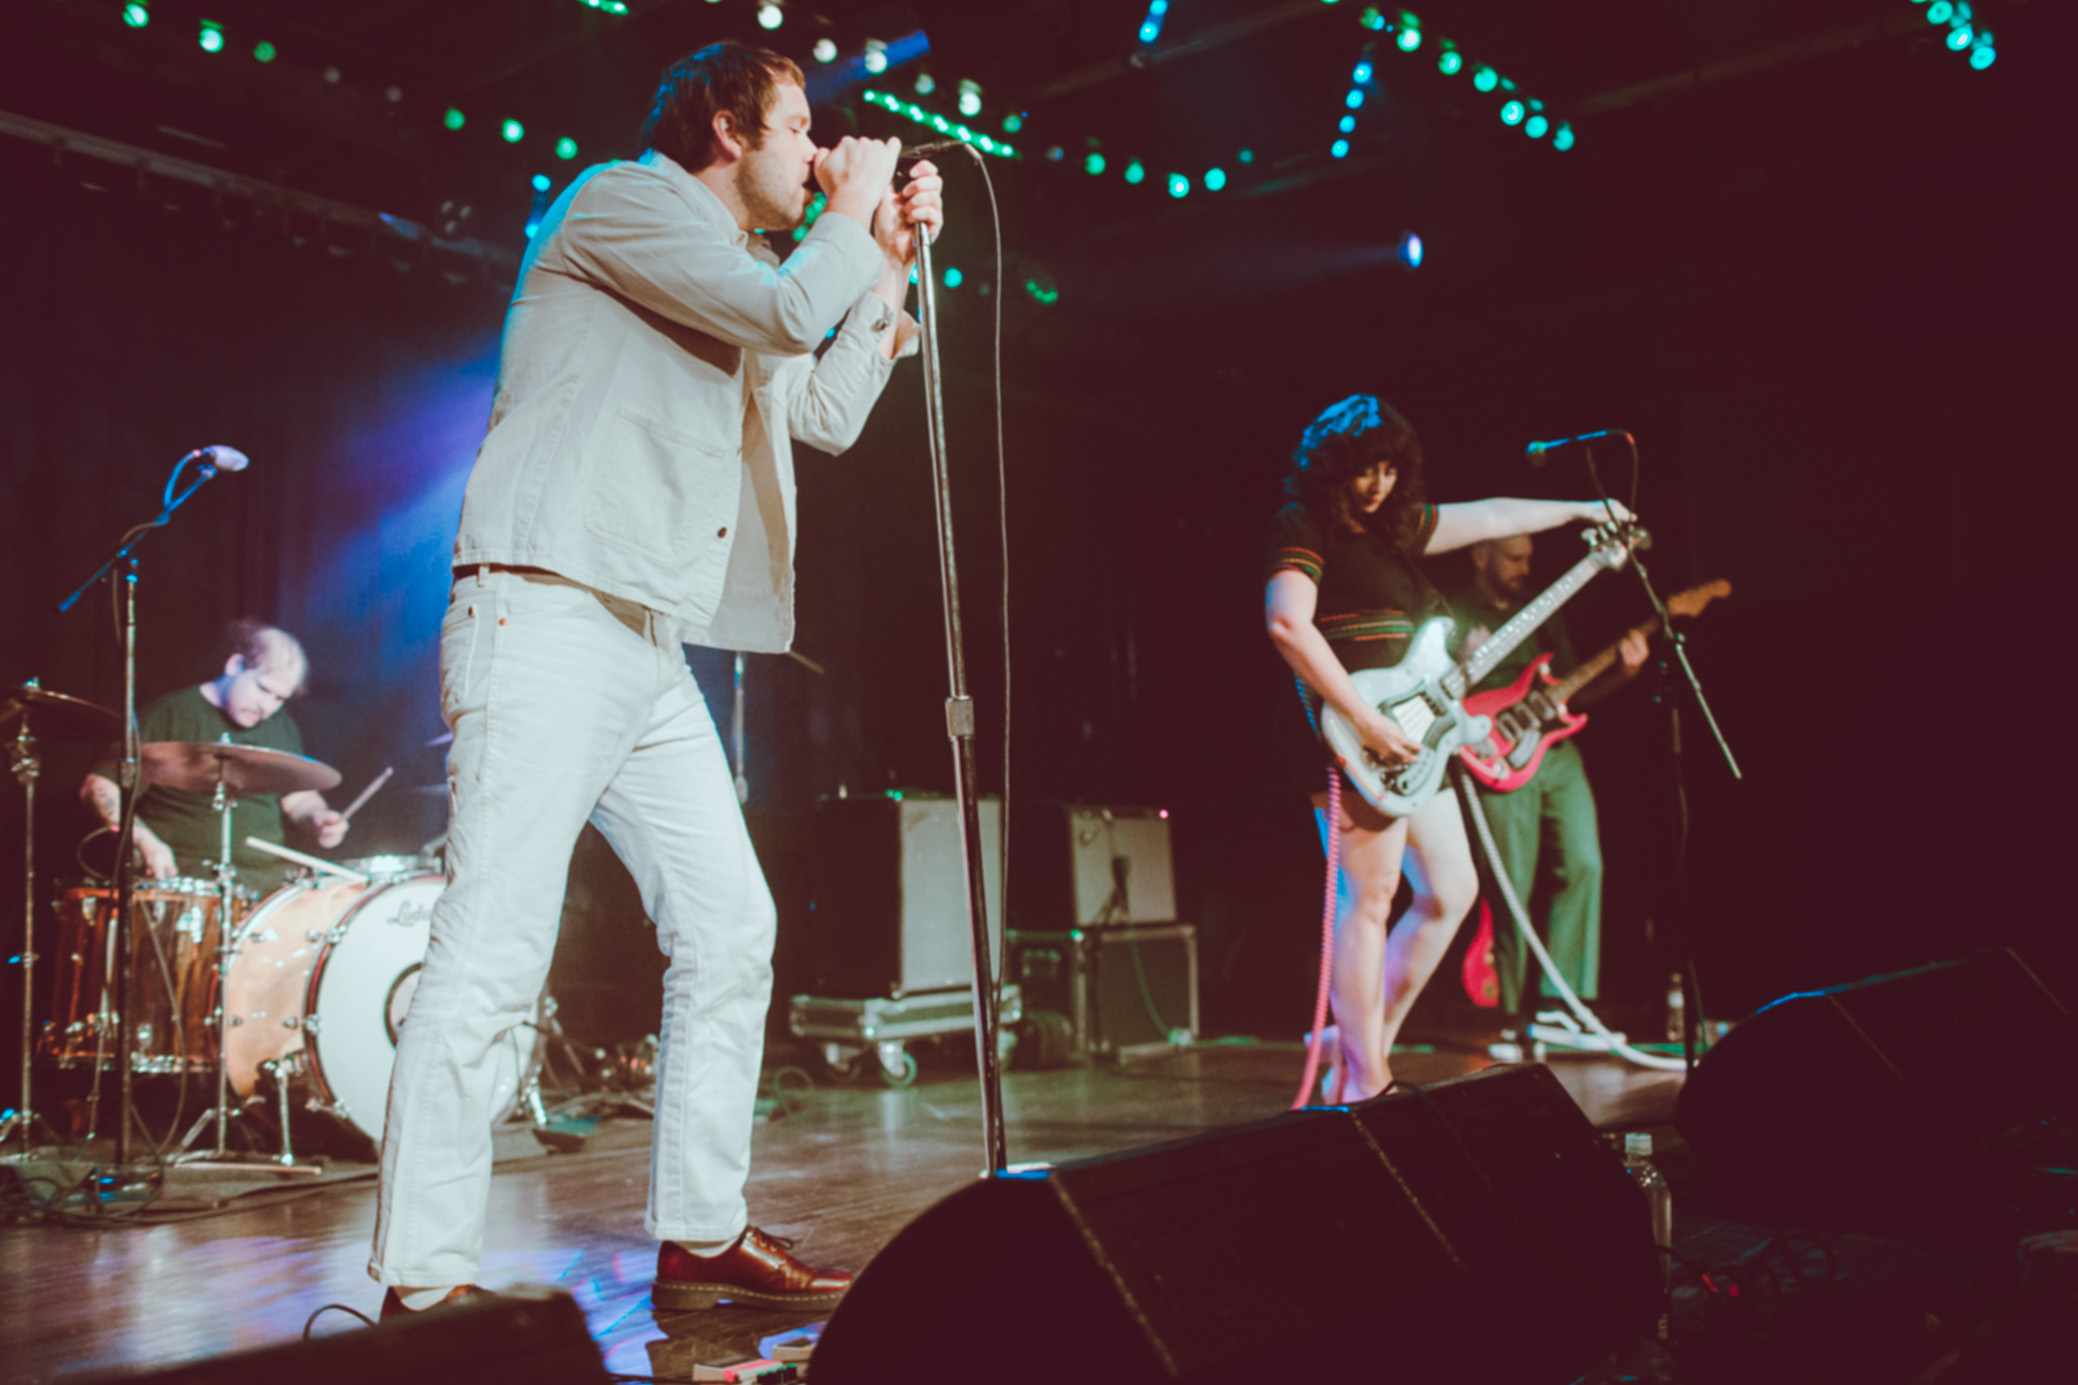 Mike Krol performs in concert at Saturn Birmingham in Birmingham, Alabama on July 23rd, 2019. (Photo by David A. Smith / DSmithScenes)